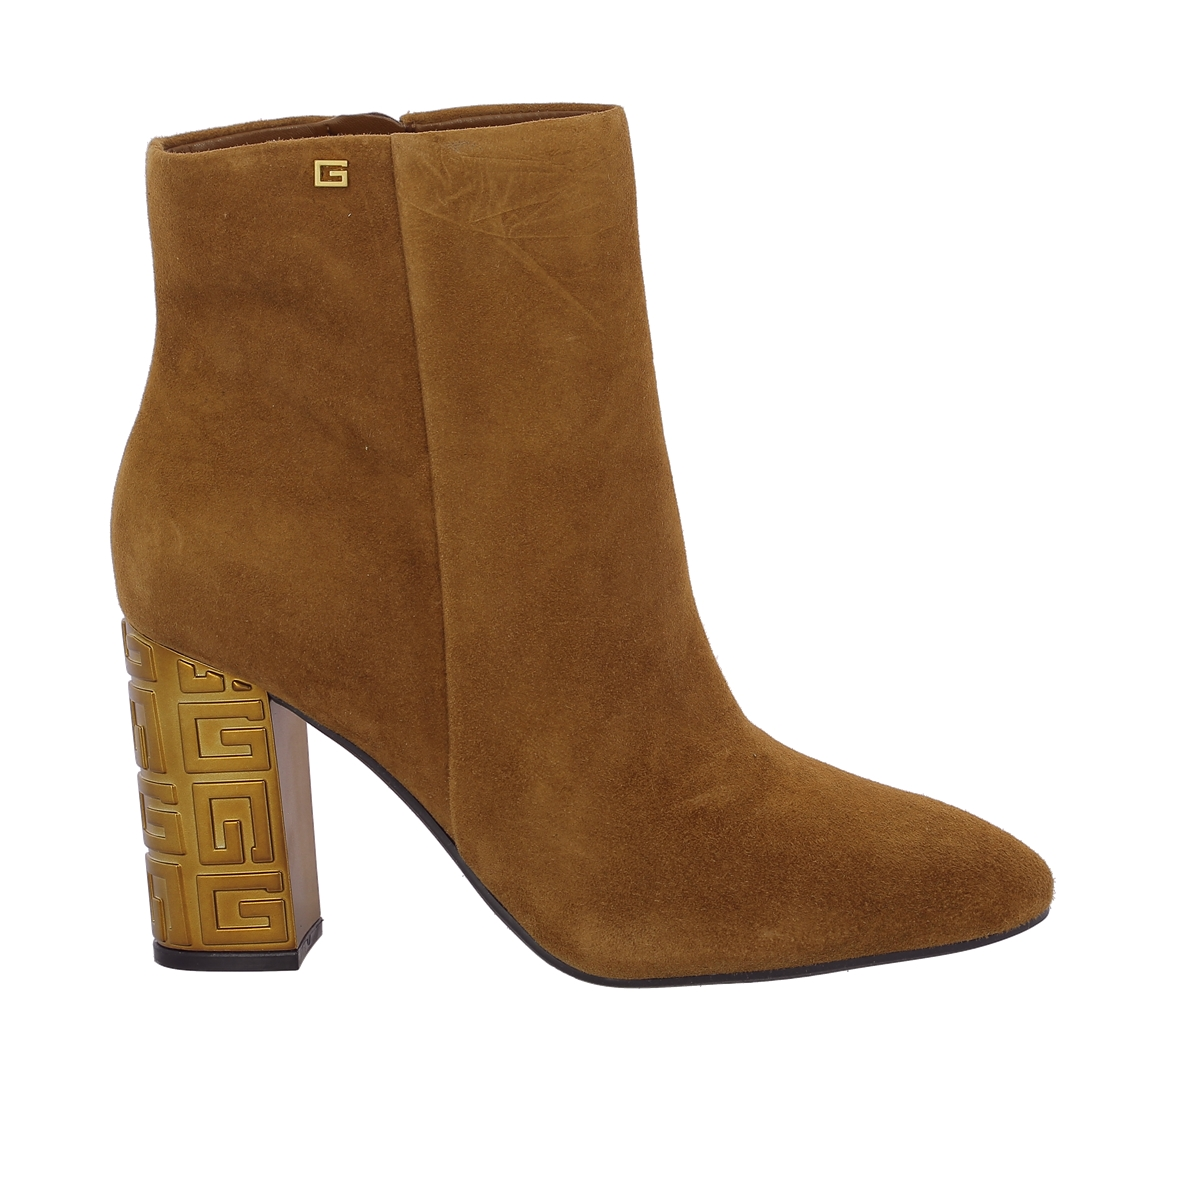 Guess Boots beige